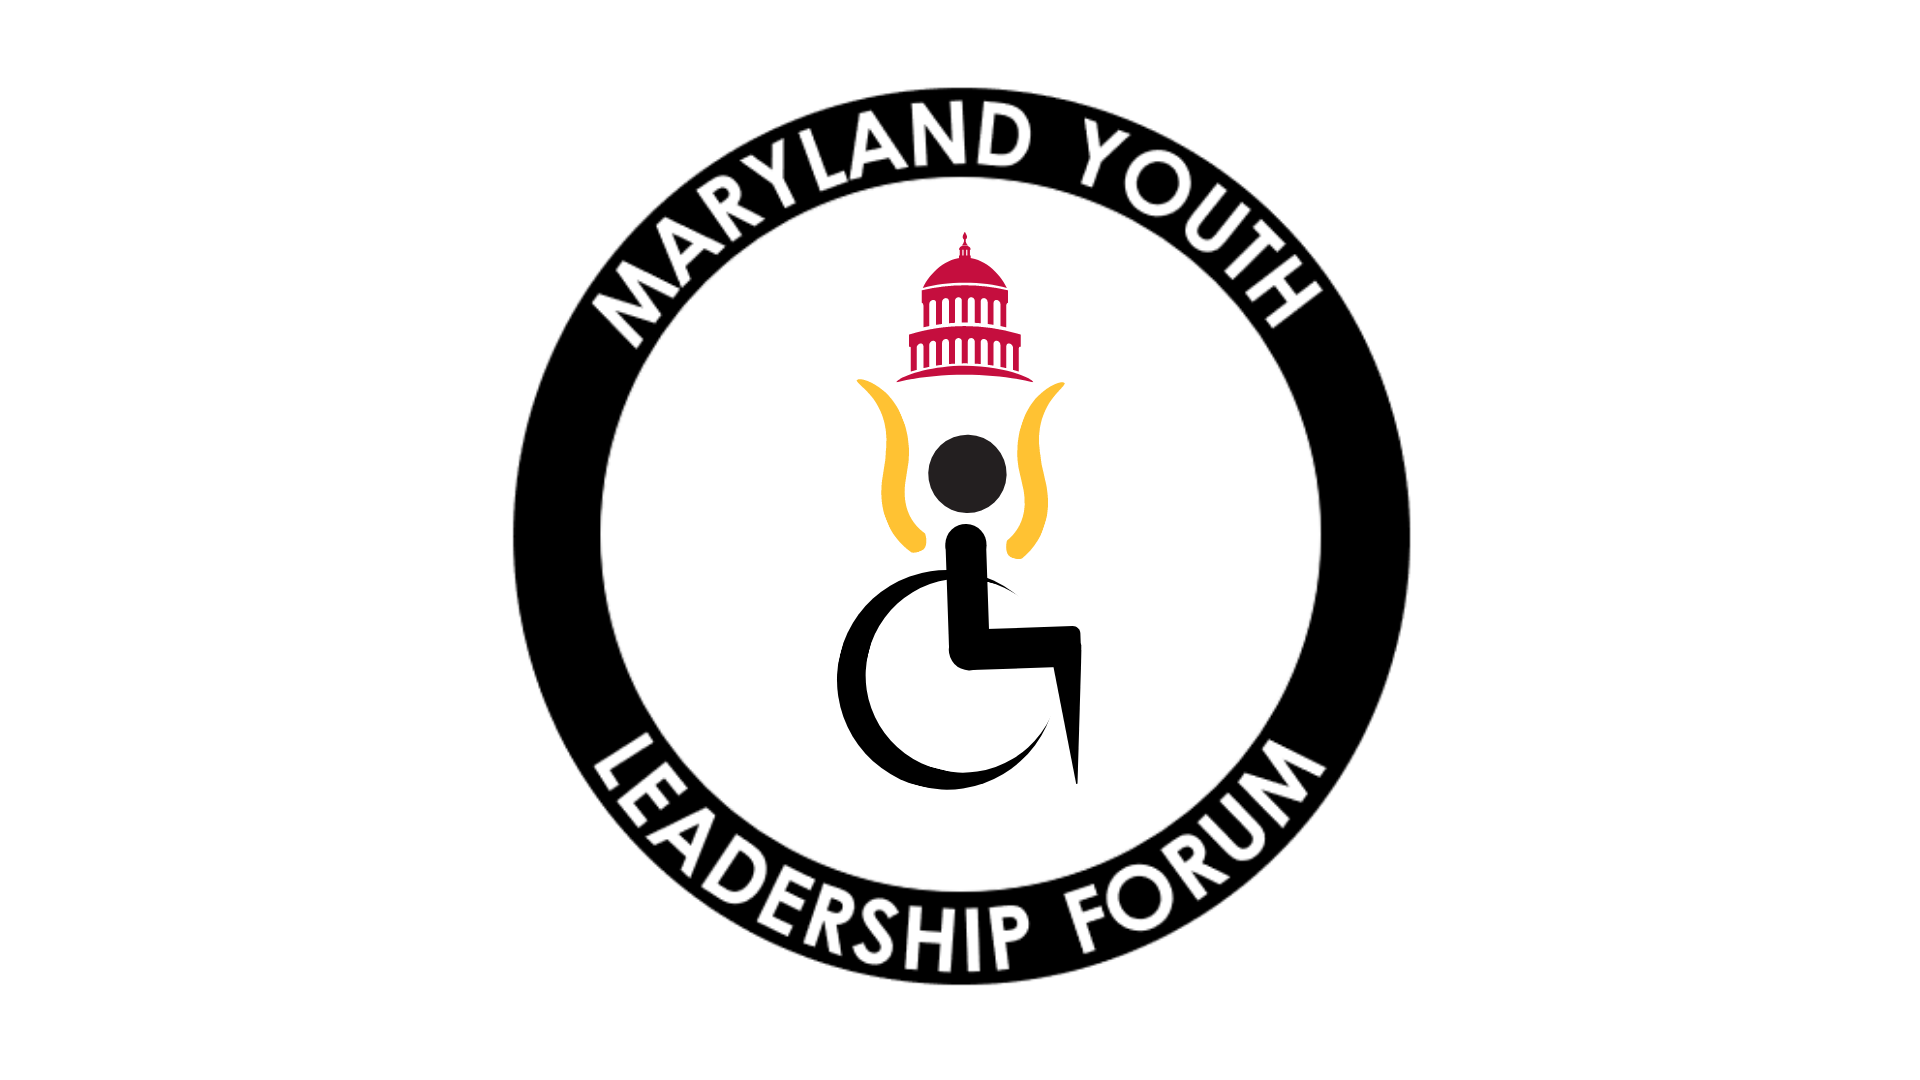 Graphic of Maryland Youth Leadership Forum logo